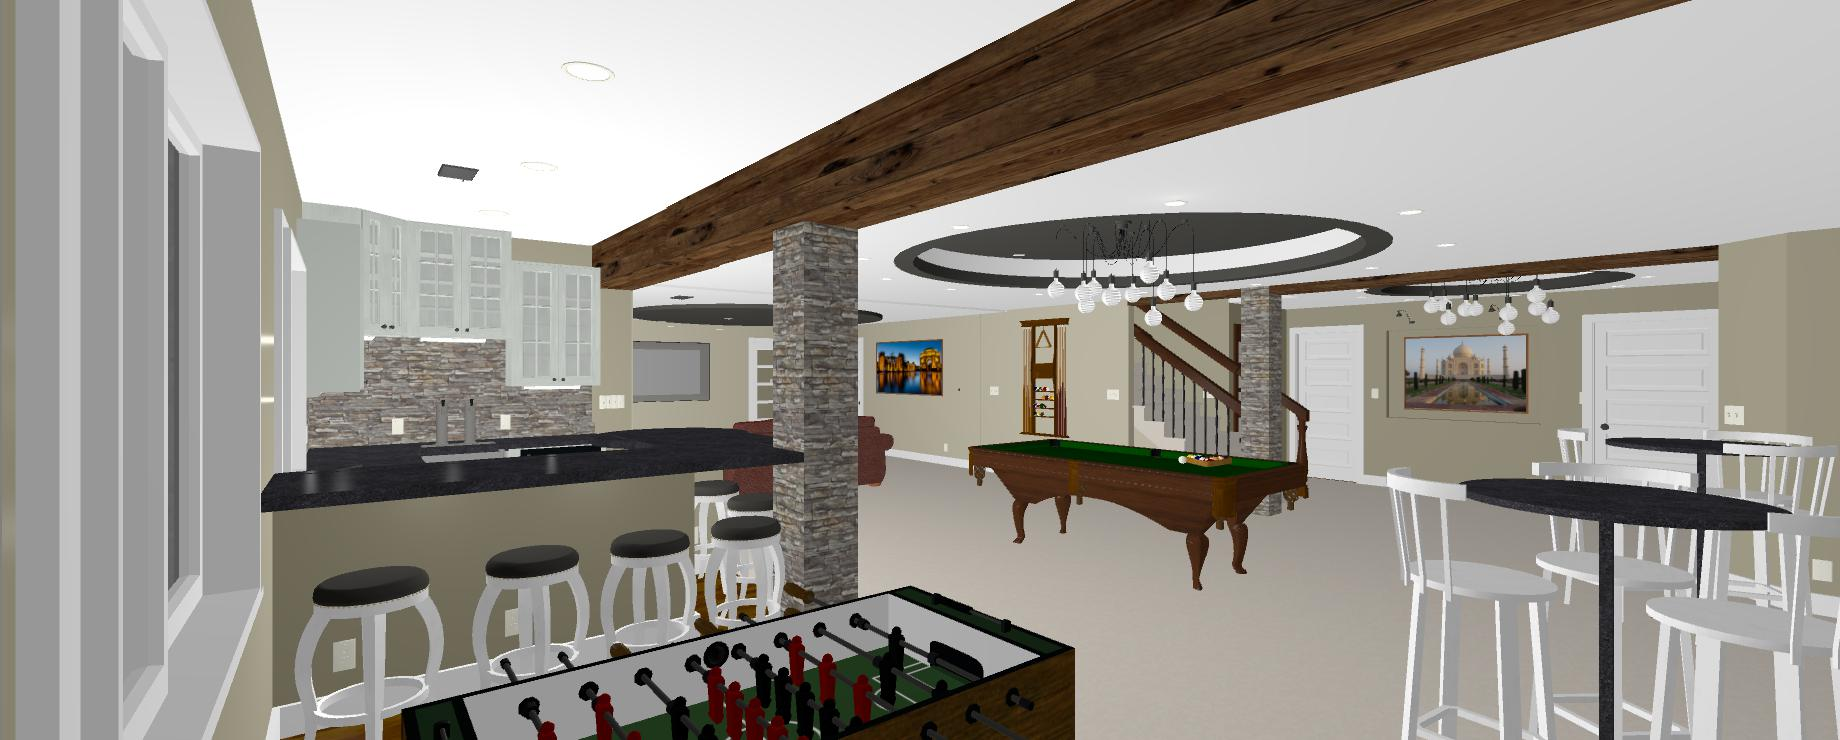 Design For Basement Basement Design  Basement Finishing  Basement Remodeling